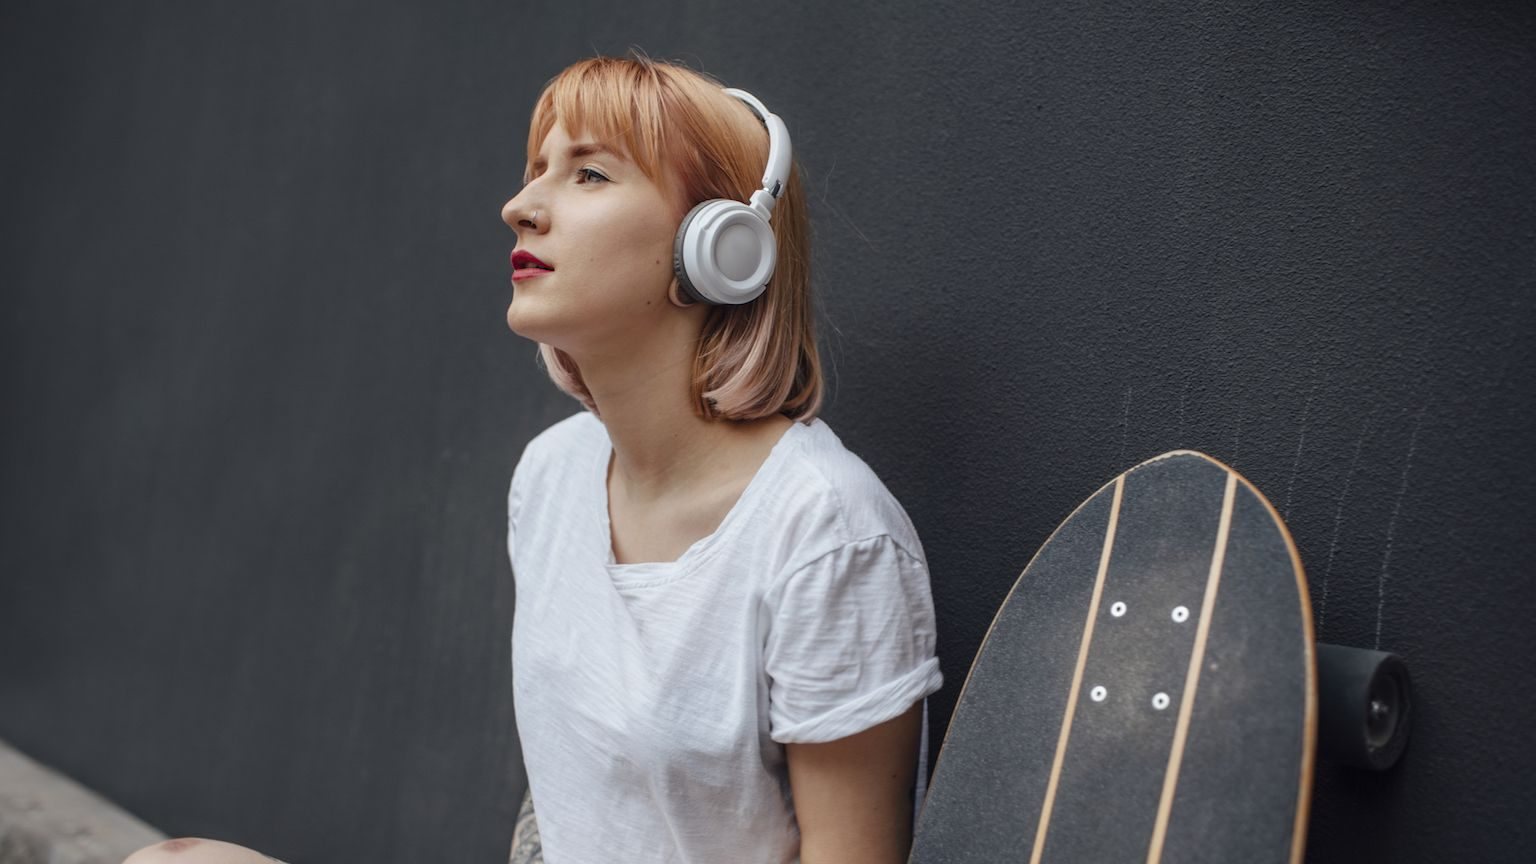 A woman wearing white over-ear wireless headphones, sitting next to her skateboard